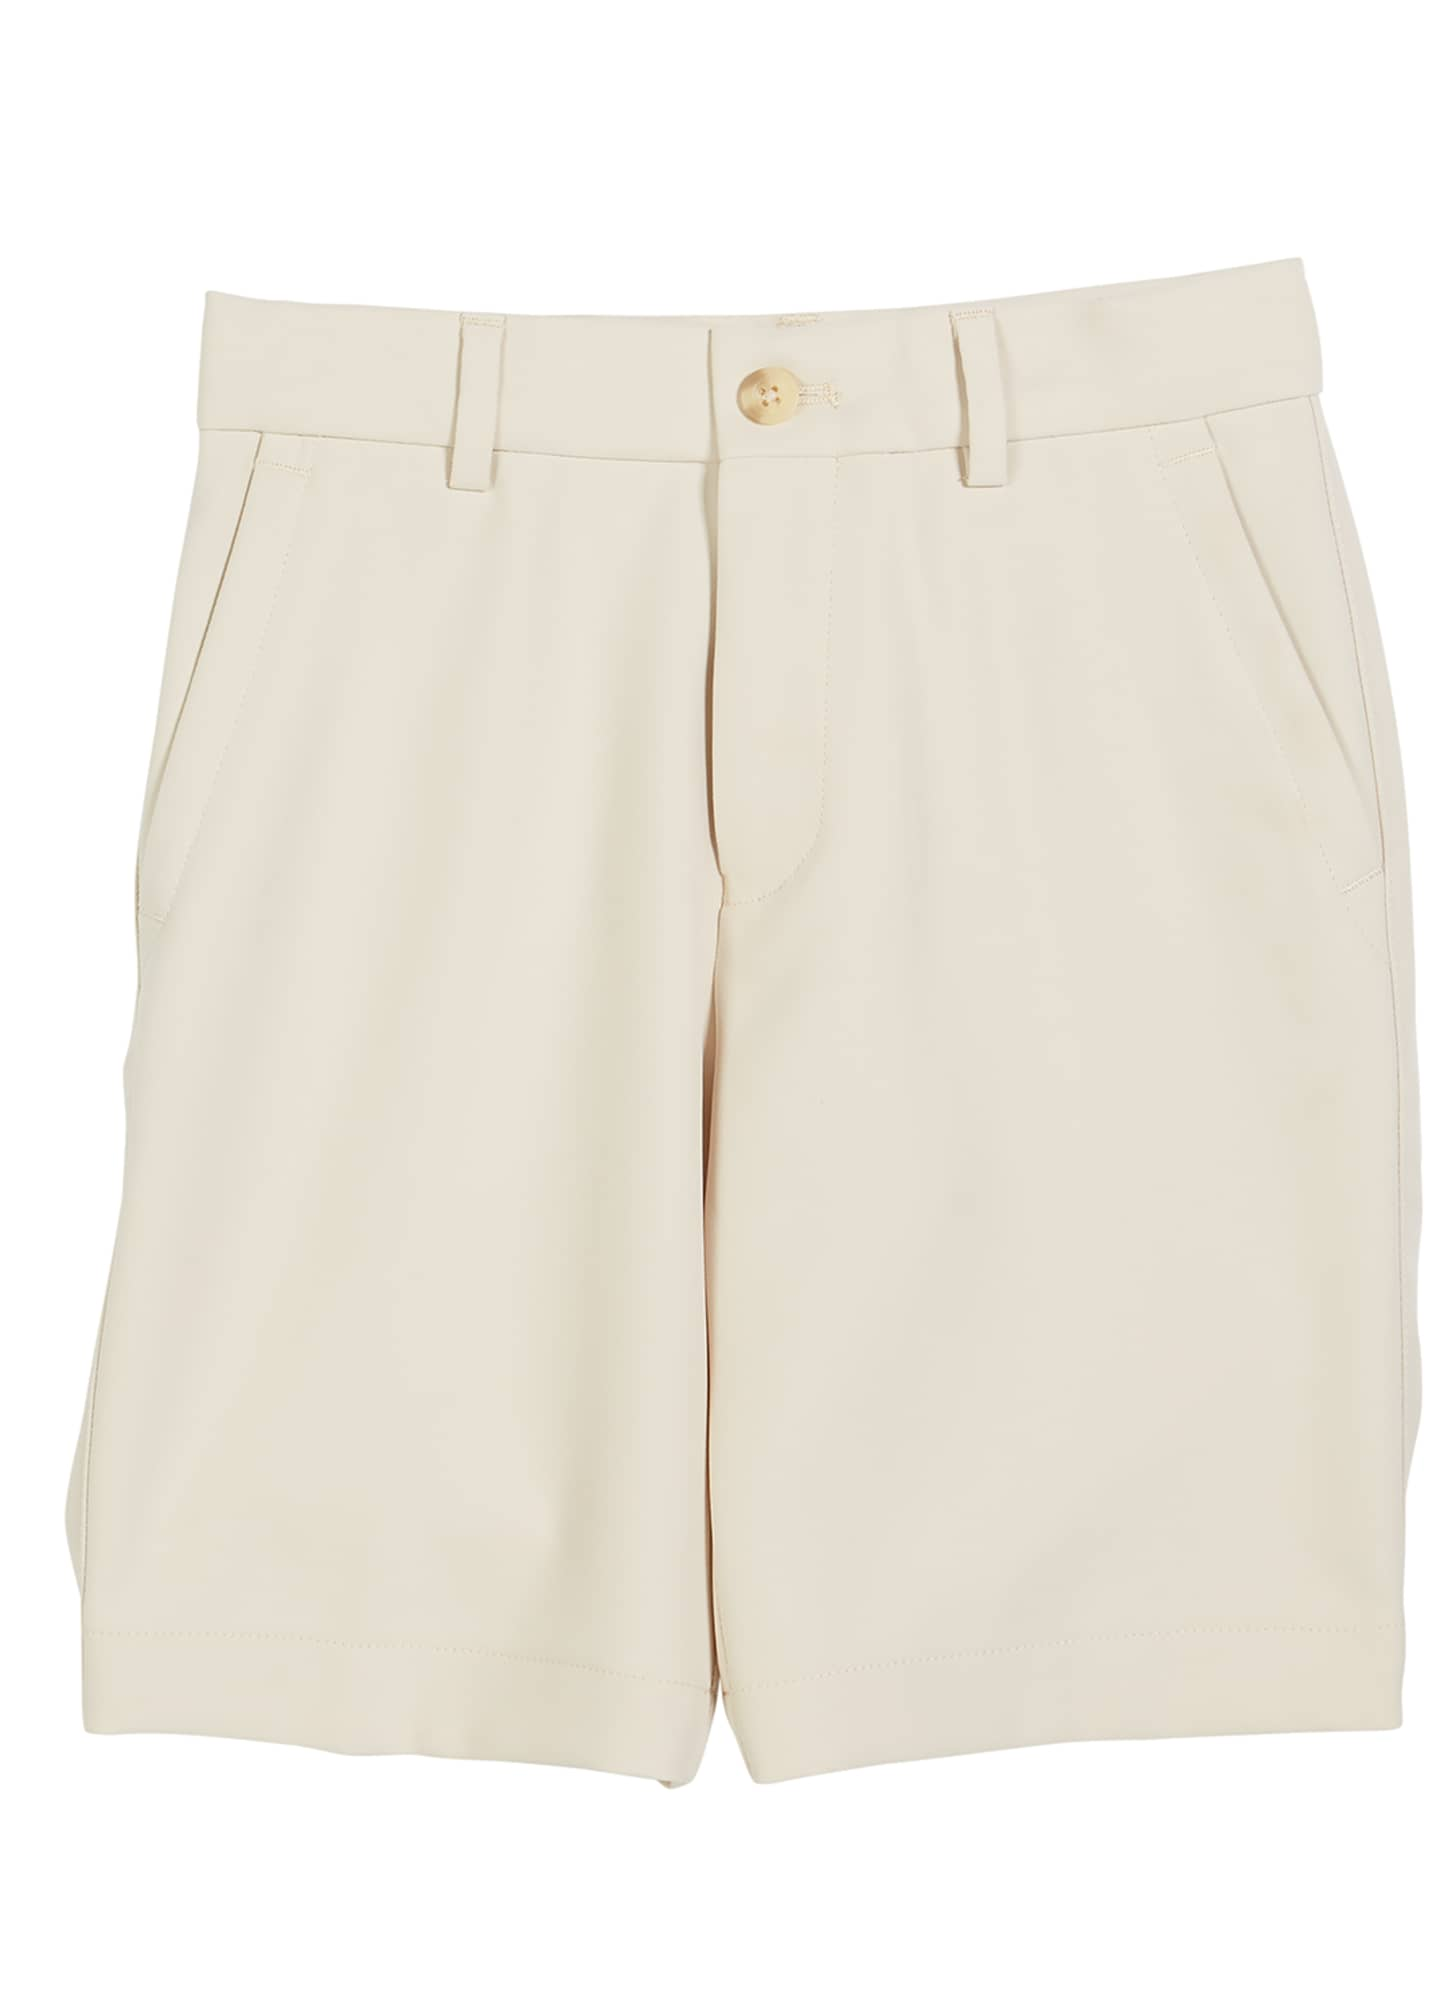 Peter Millar Salem Performance Shorts, Youth Boys